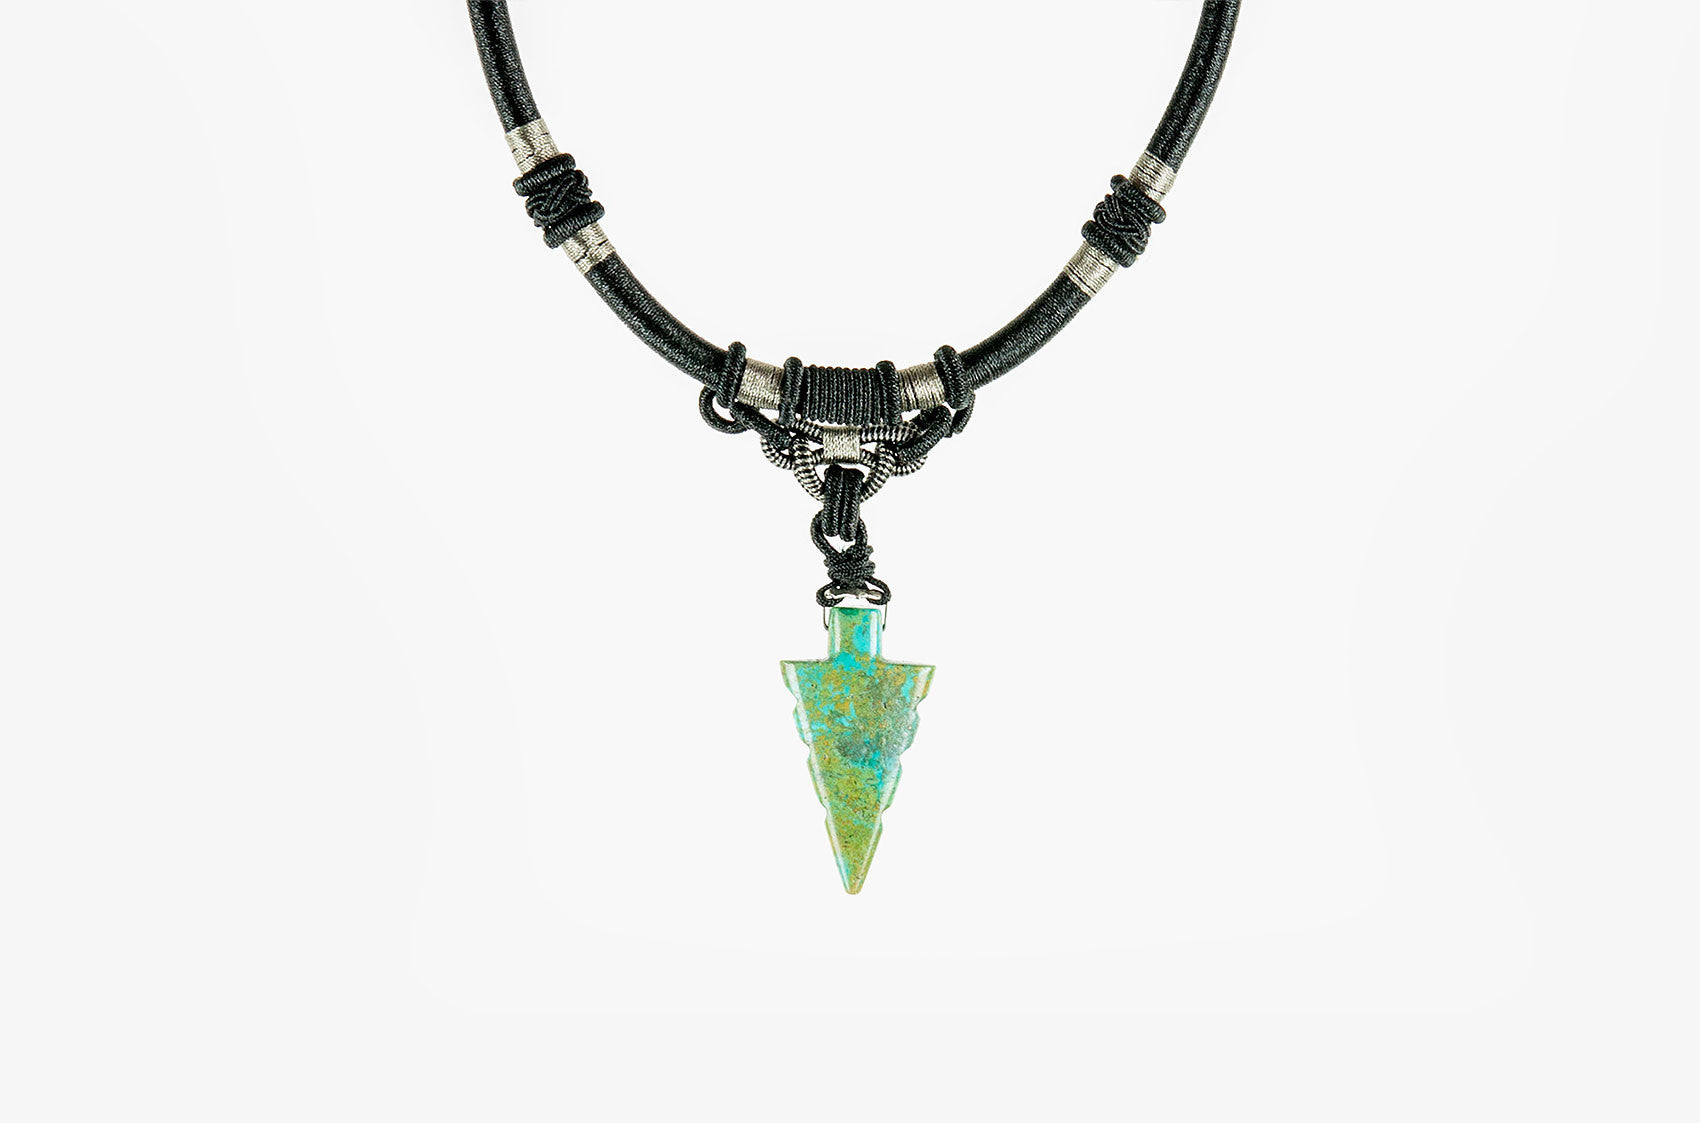 Tribal woven necklace with jade arrow pendant